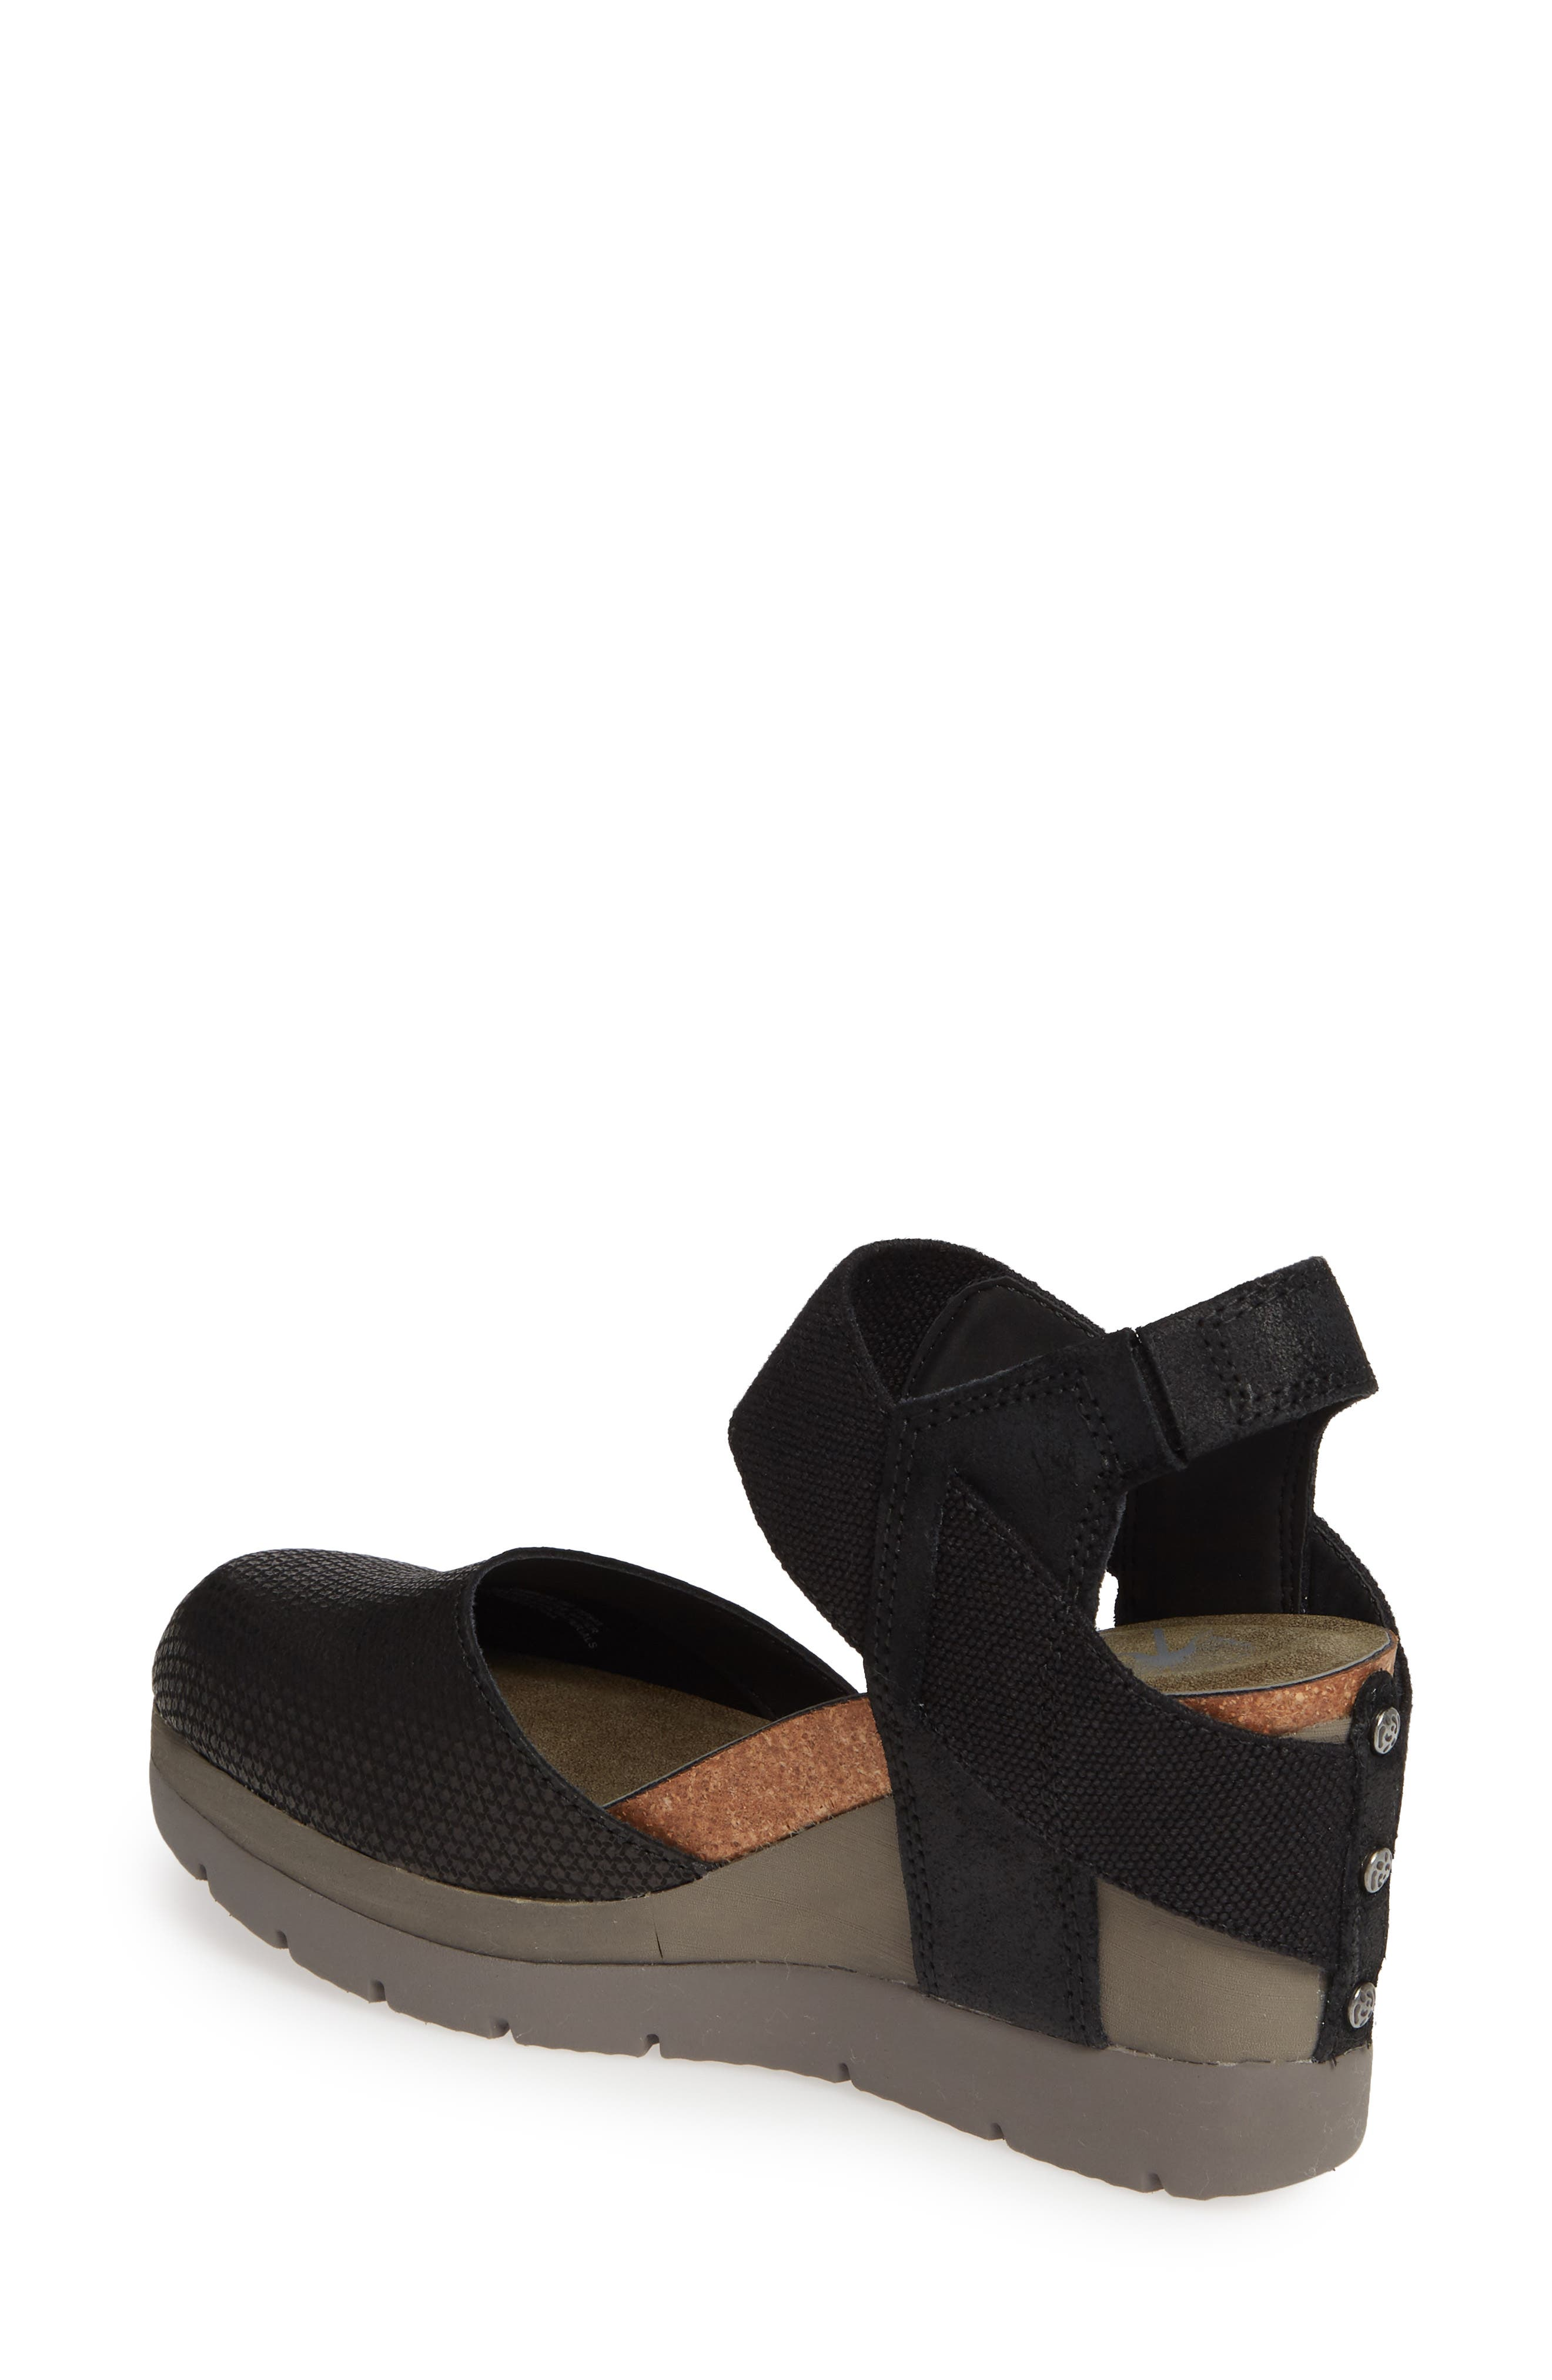 Carry On Wedge Sandal,                             Alternate thumbnail 2, color,                             BLACK LEATHER